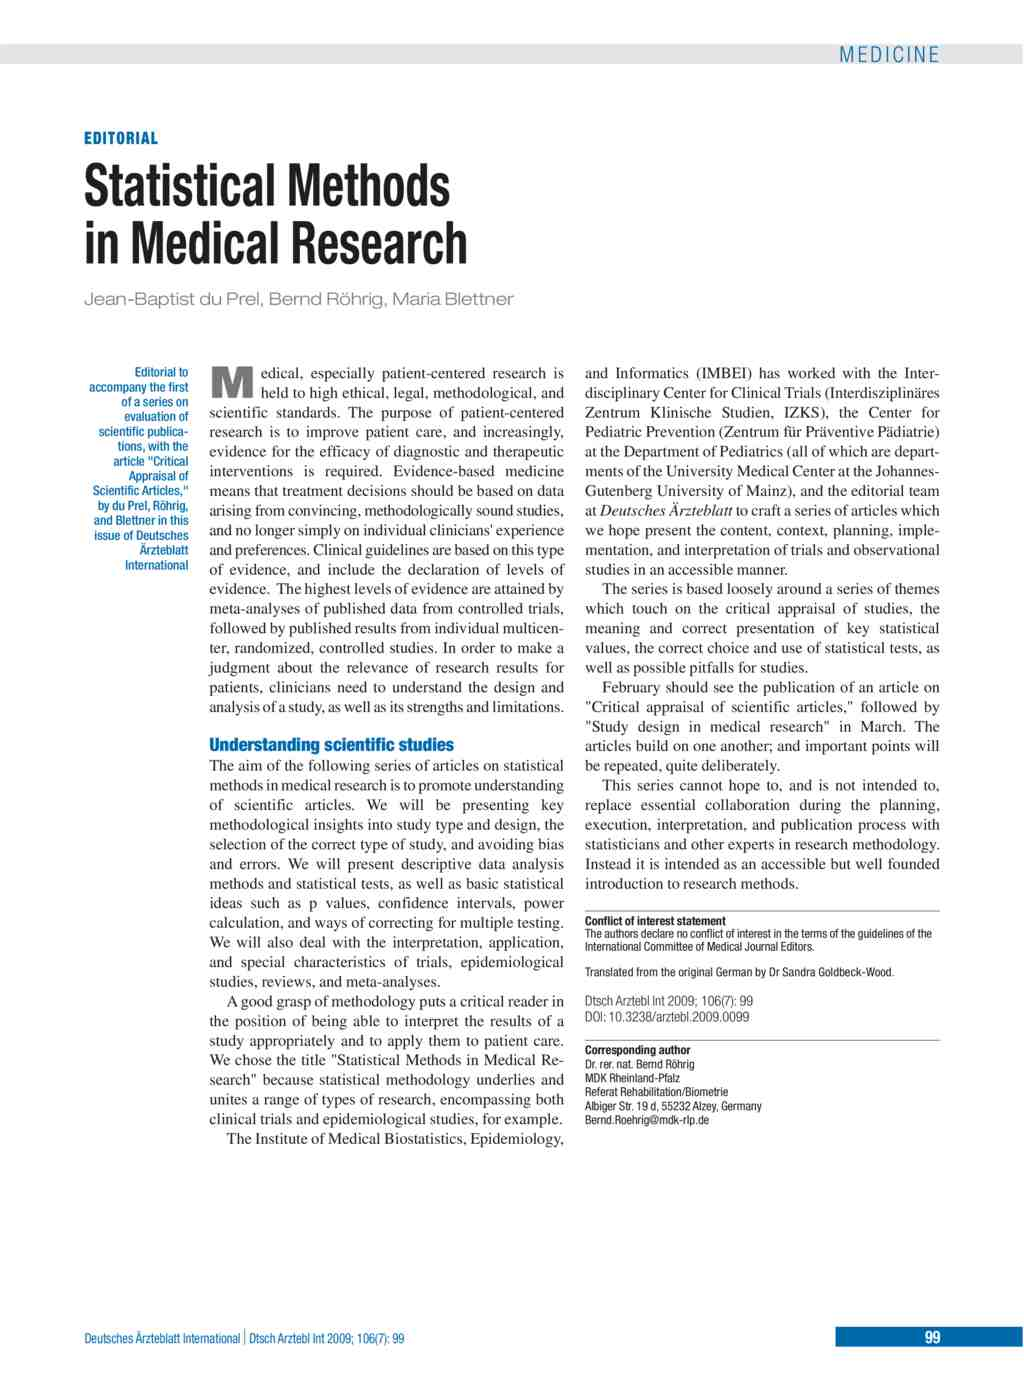 Statistical Methods in Medical Research (13 02 2009)